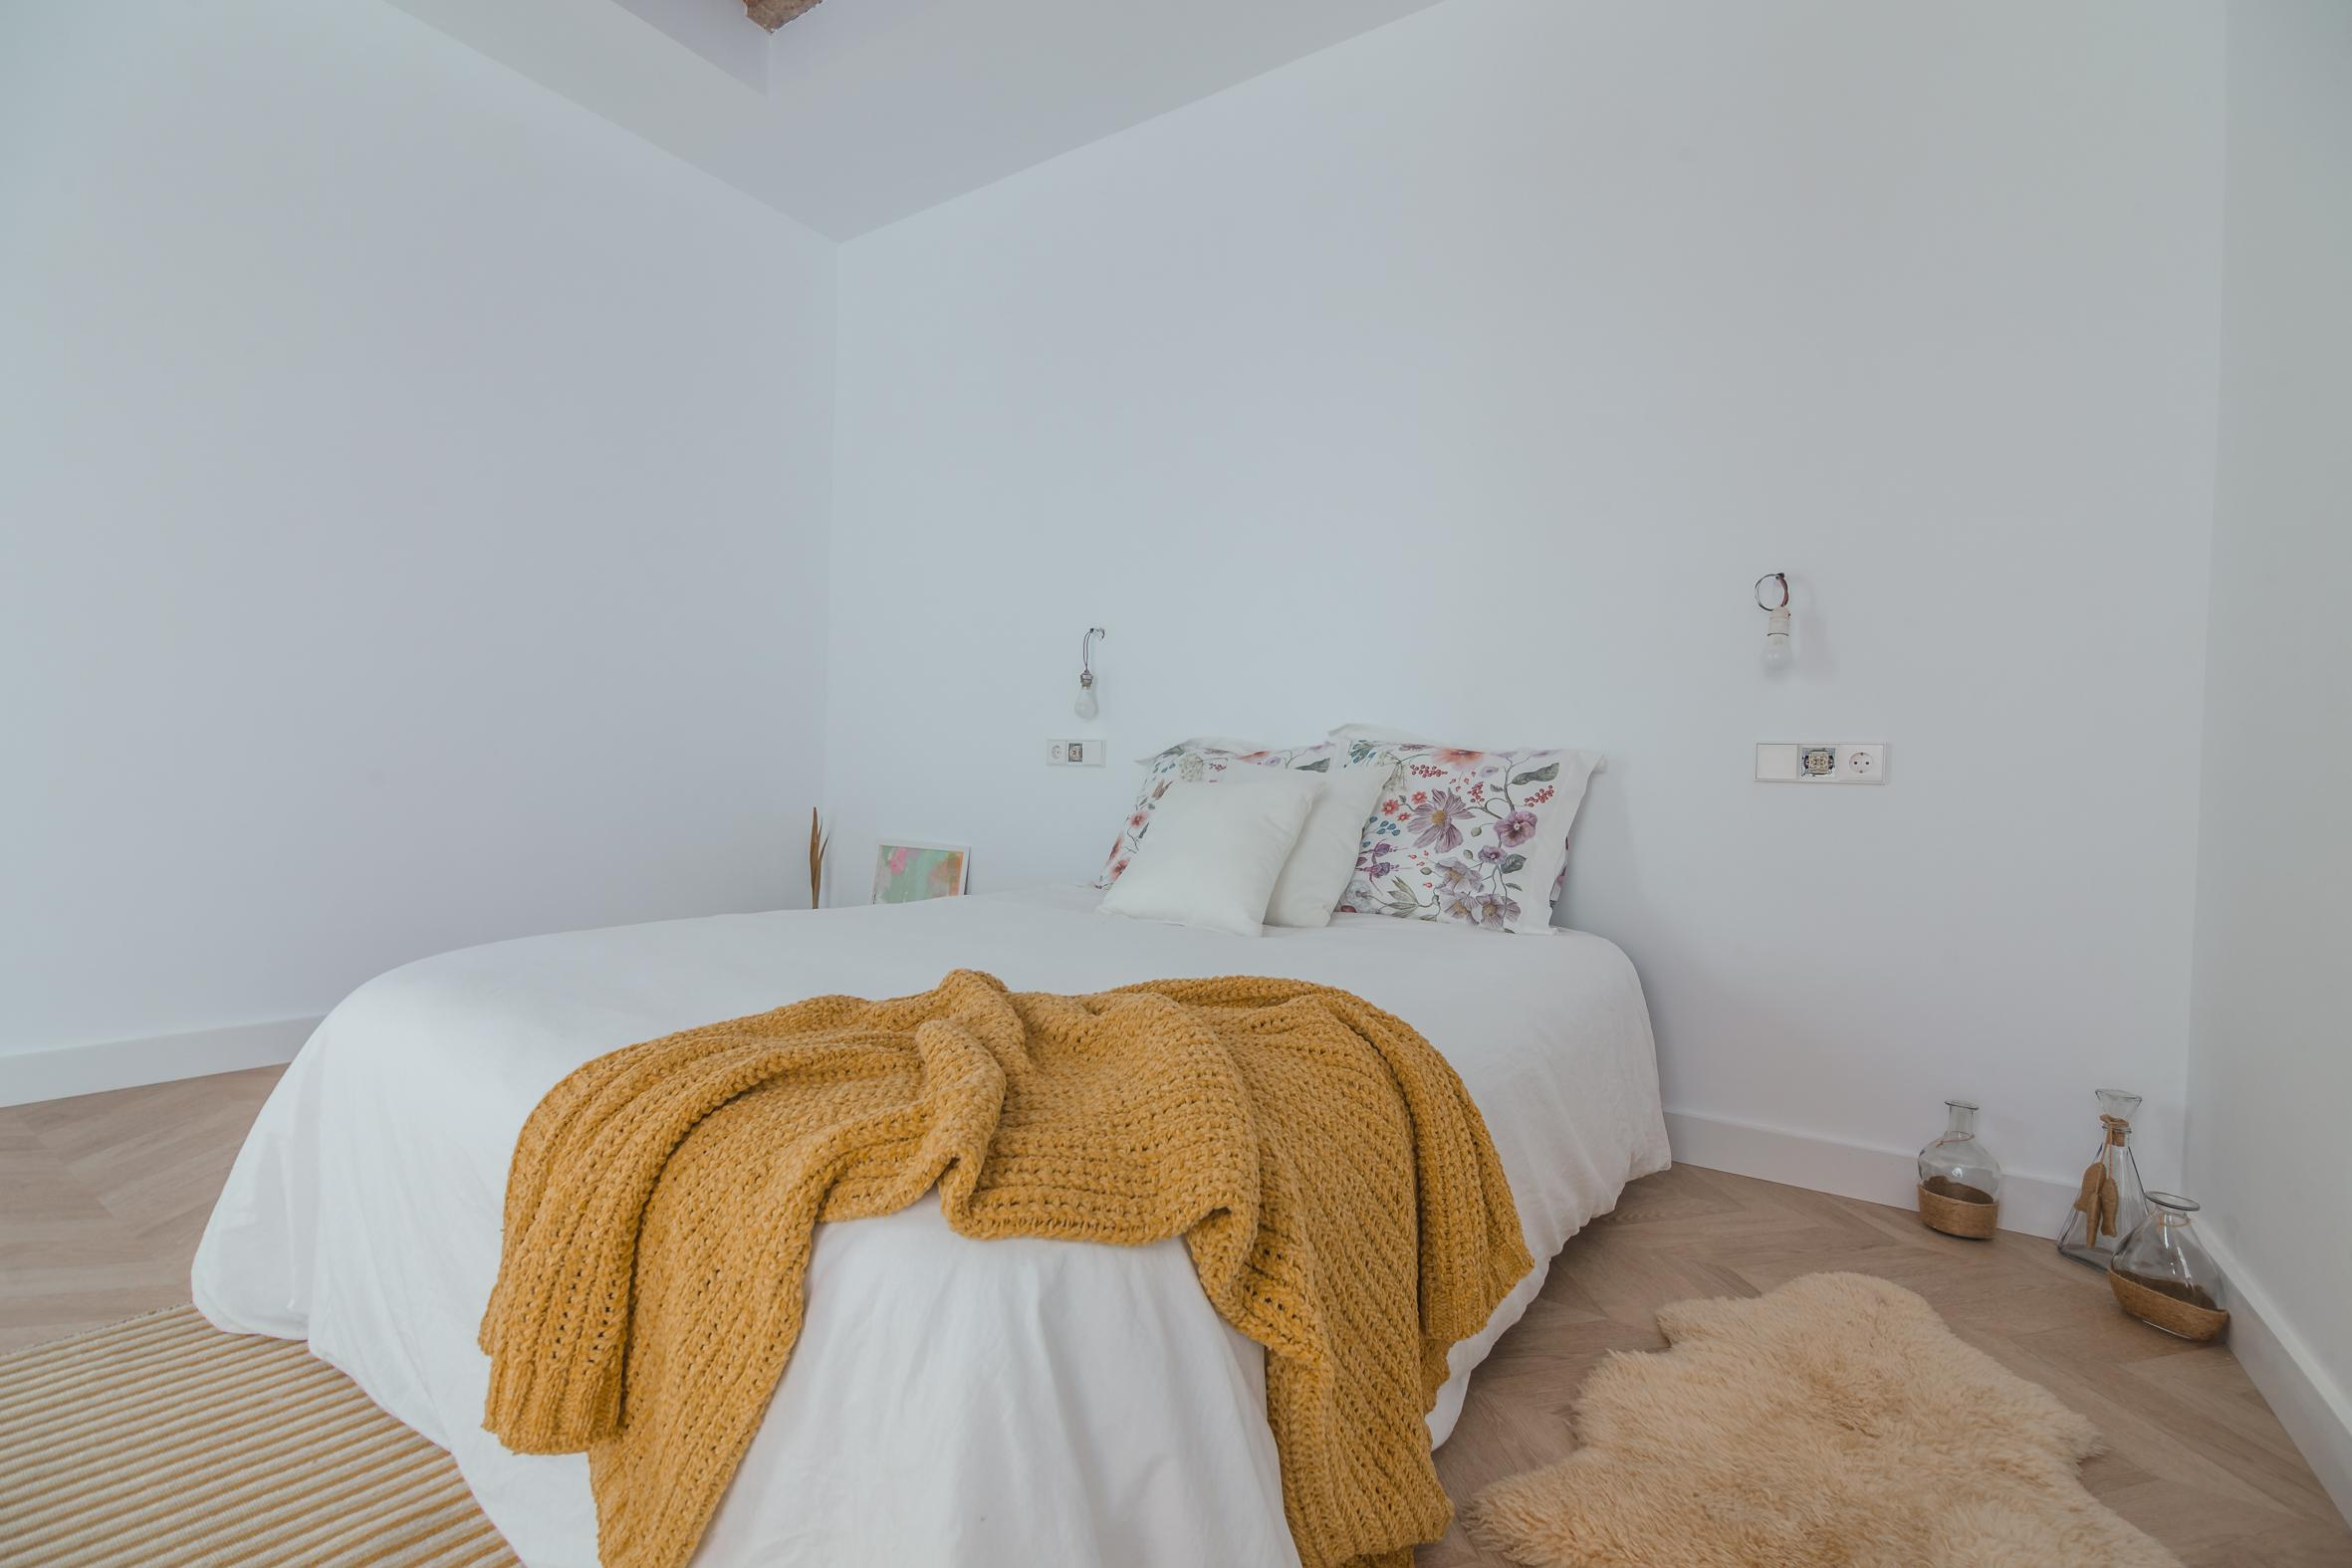 244010 Flat for sale in Ciutat Vella, Barri Gótic 23